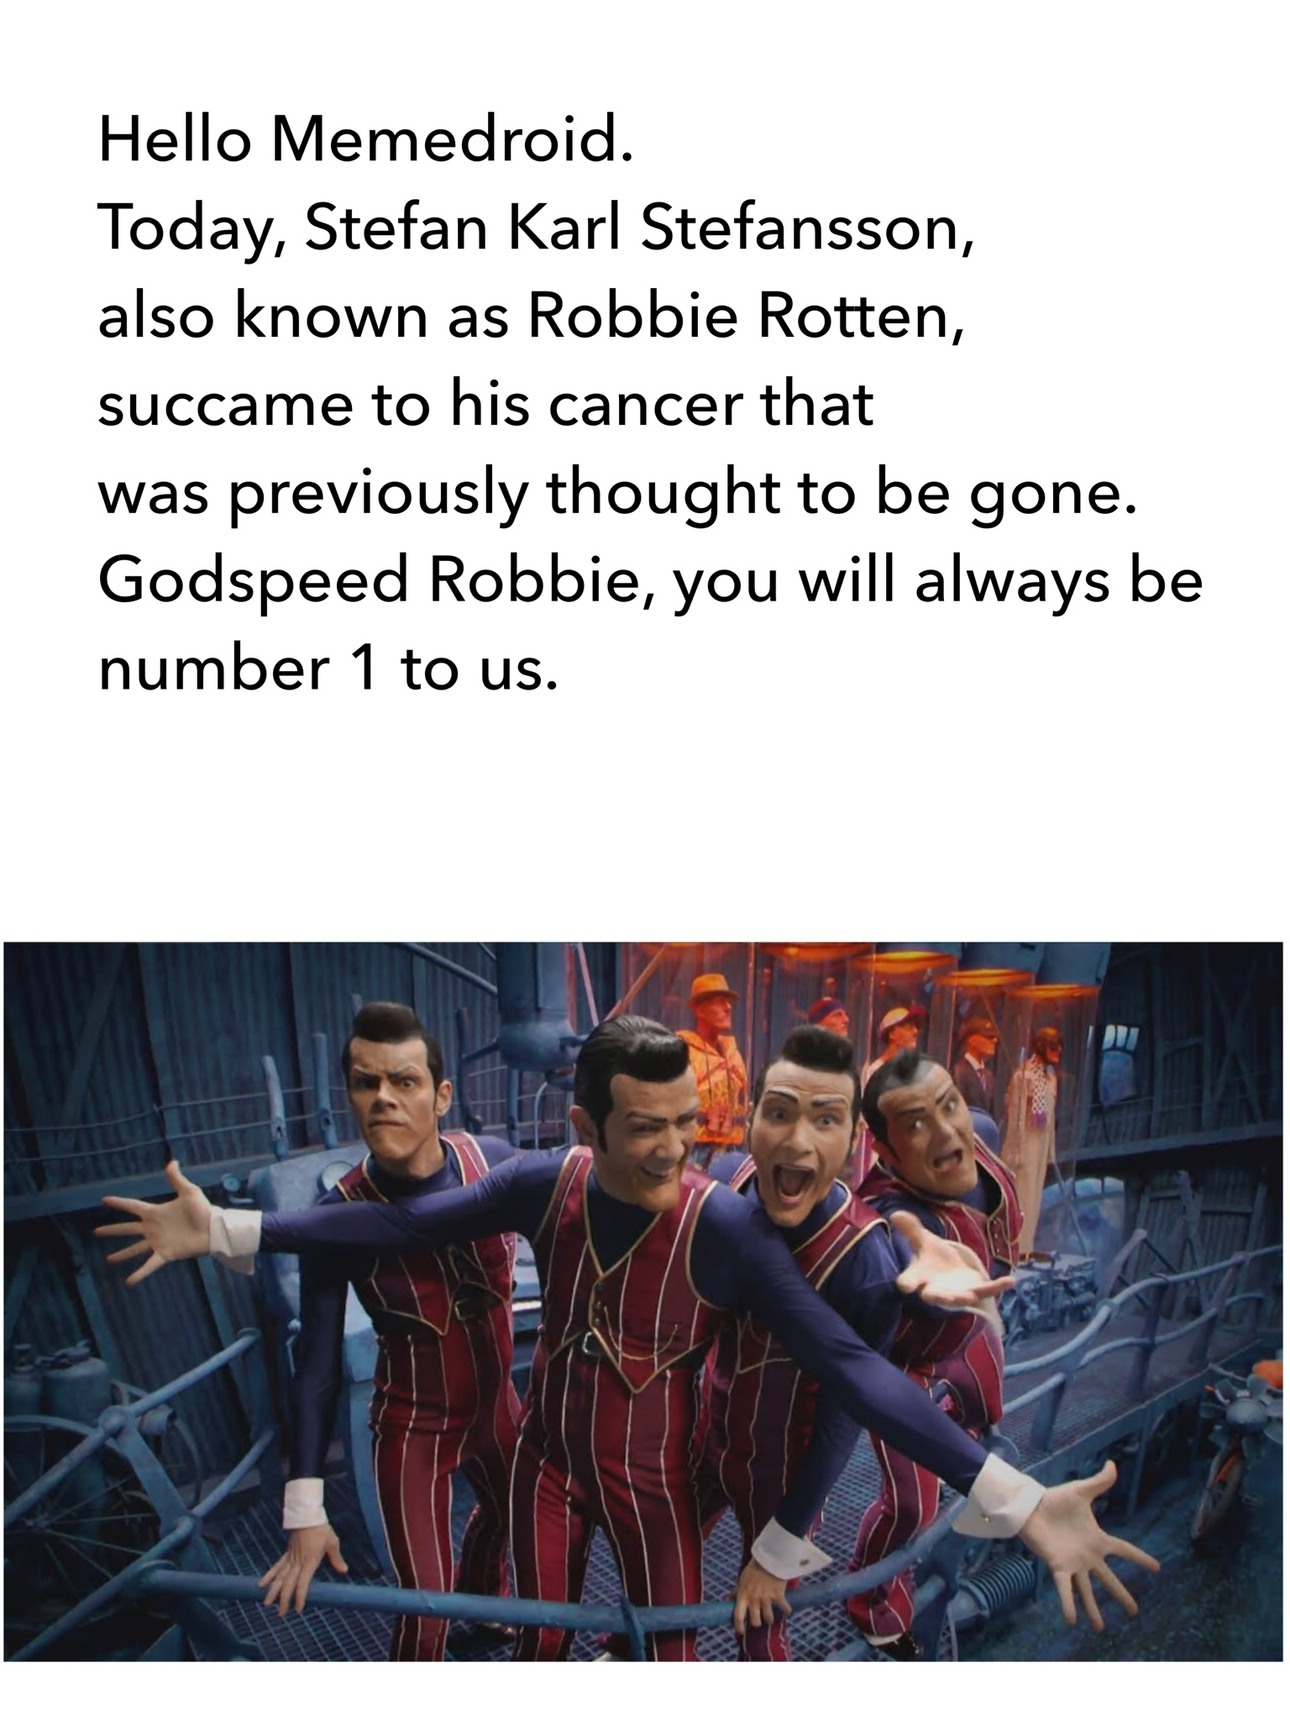 Rest in peace, Stefan - meme